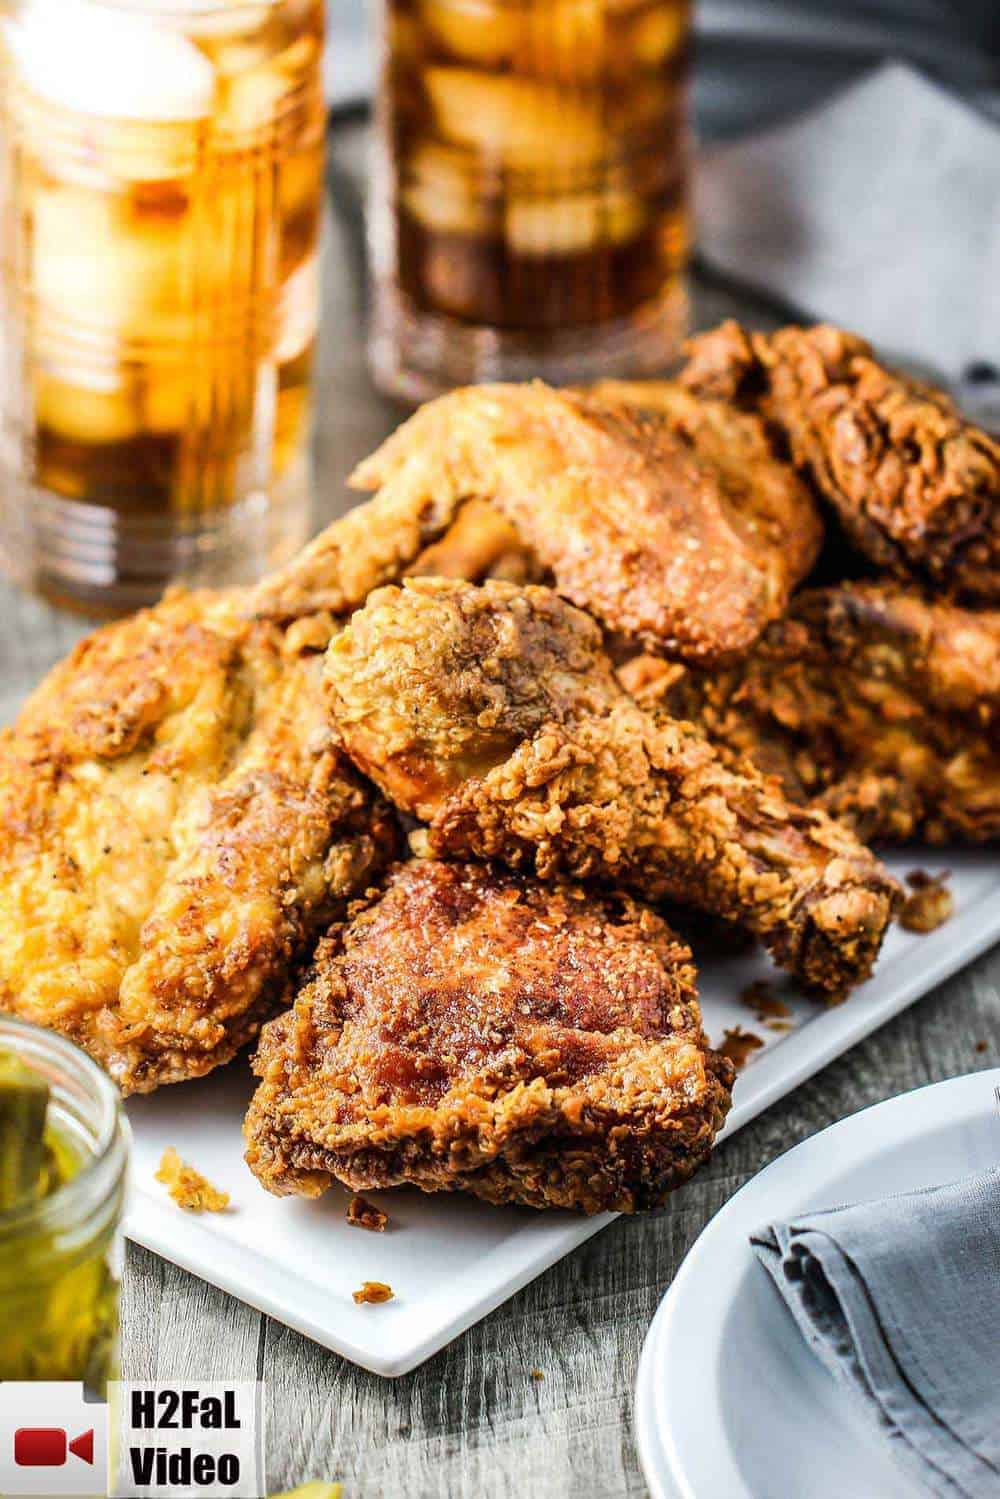 Southern Fried Chicken on a white platter with a glass of iced tea nearby